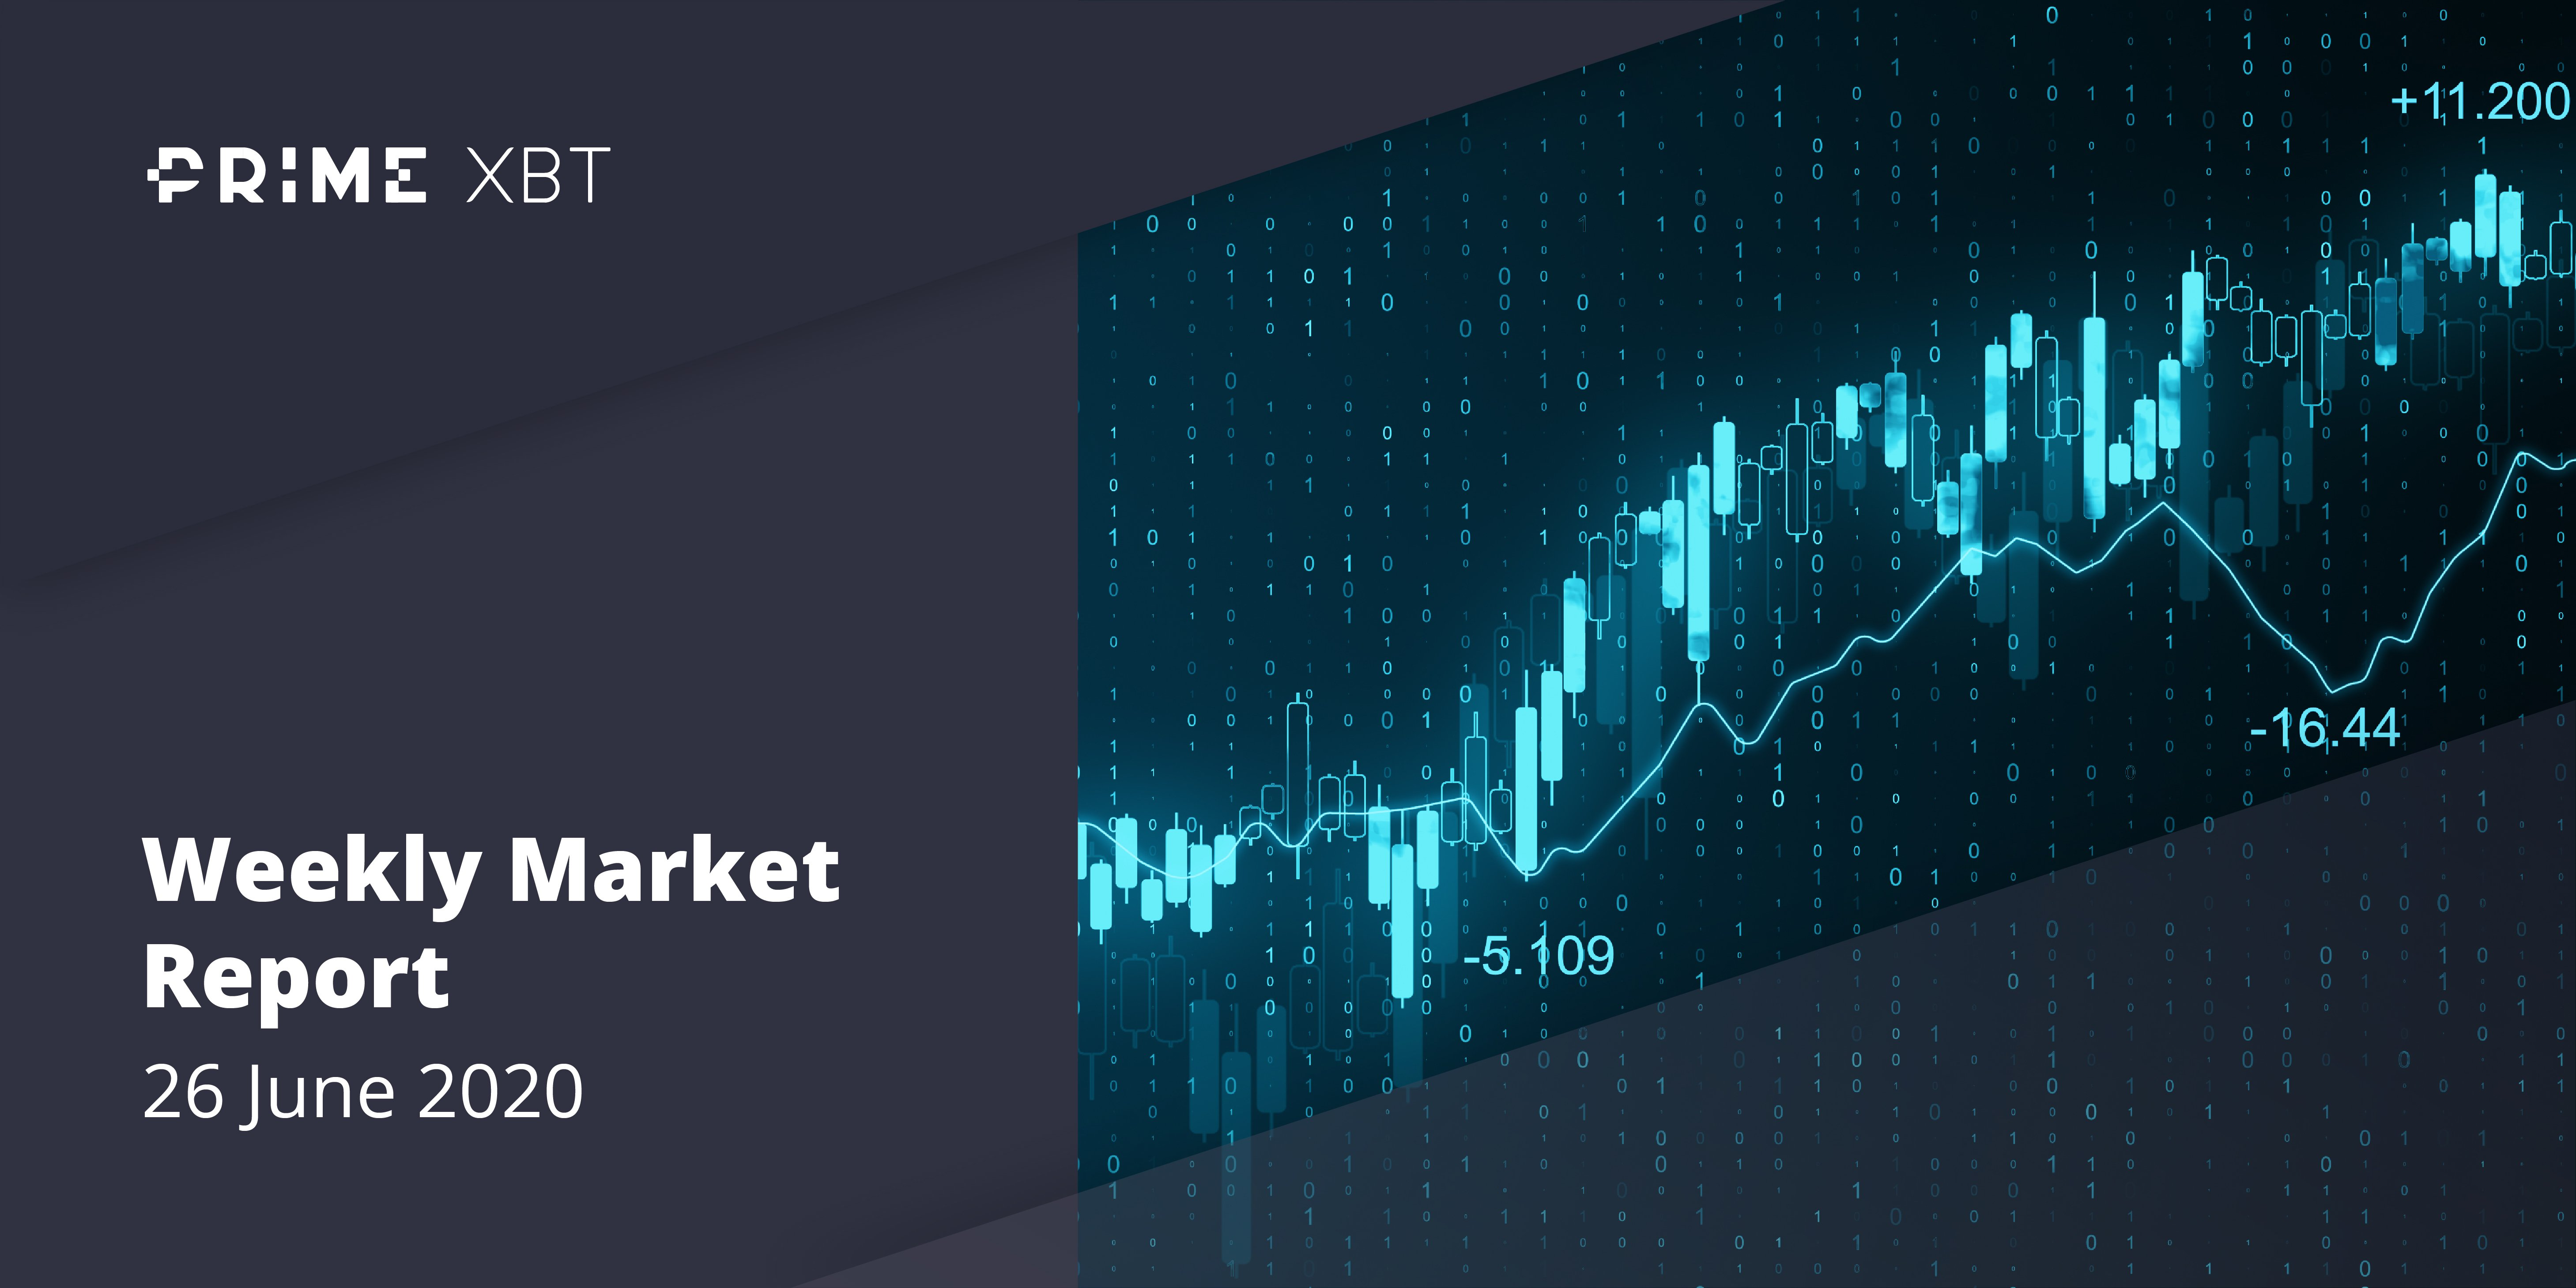 Crypto Market Report: Everything Bitcoin Trends Sideways, Spotlight on Ethereum and DeFi - 26.06.20